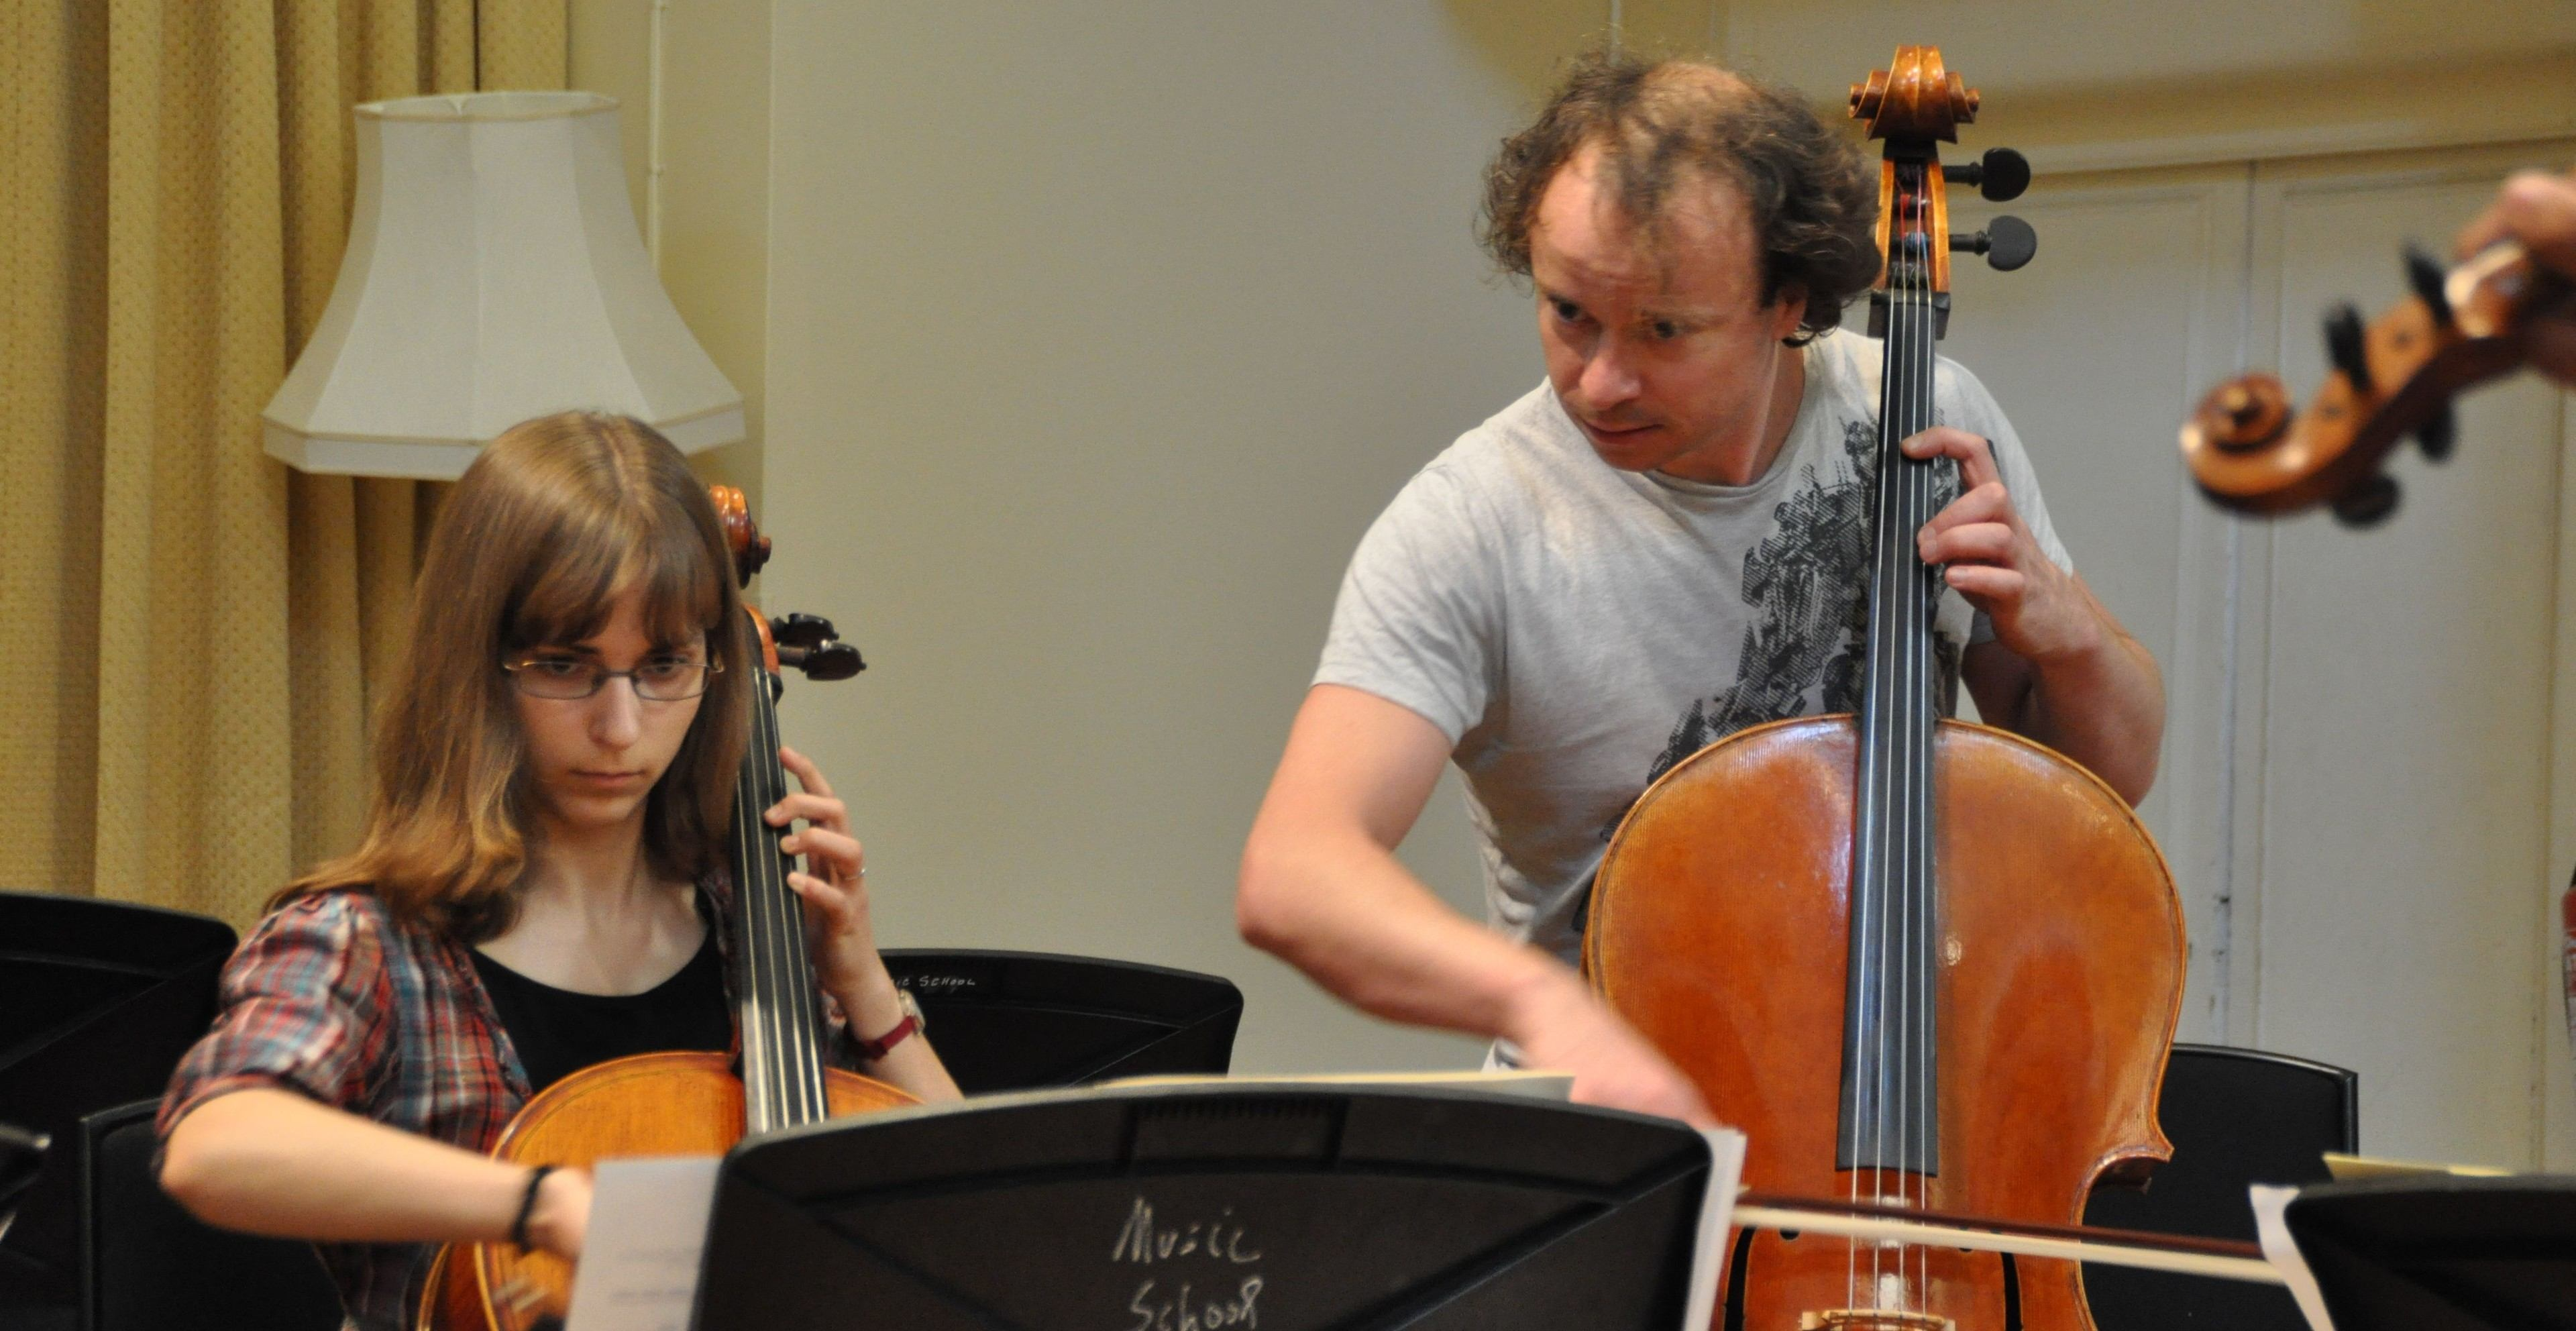 Cello tuition at The Ingenium Academy Music Summer Course